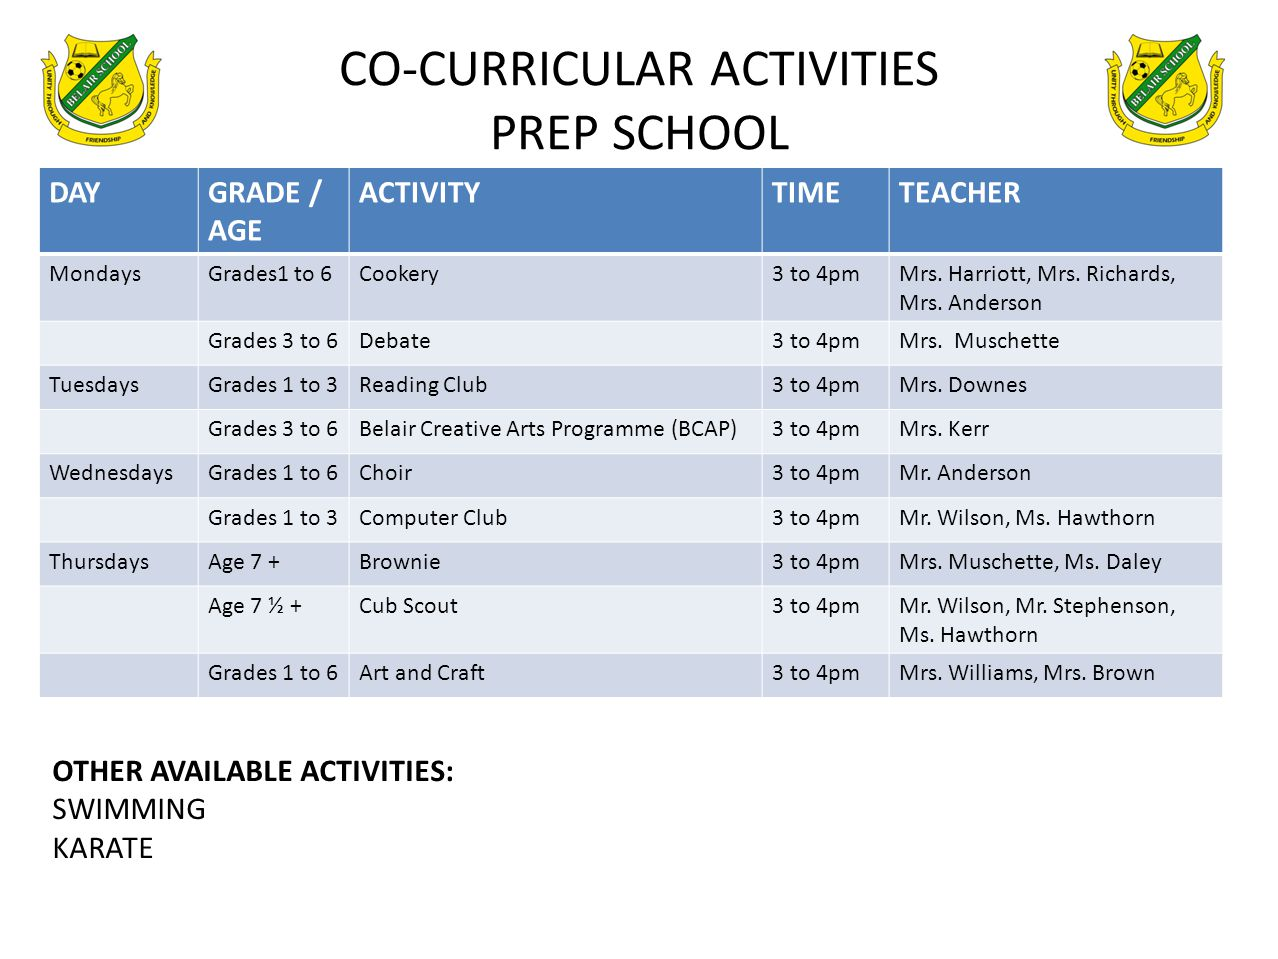 CO-CURRICULAR ACTIVITIES PREP SCHOOL